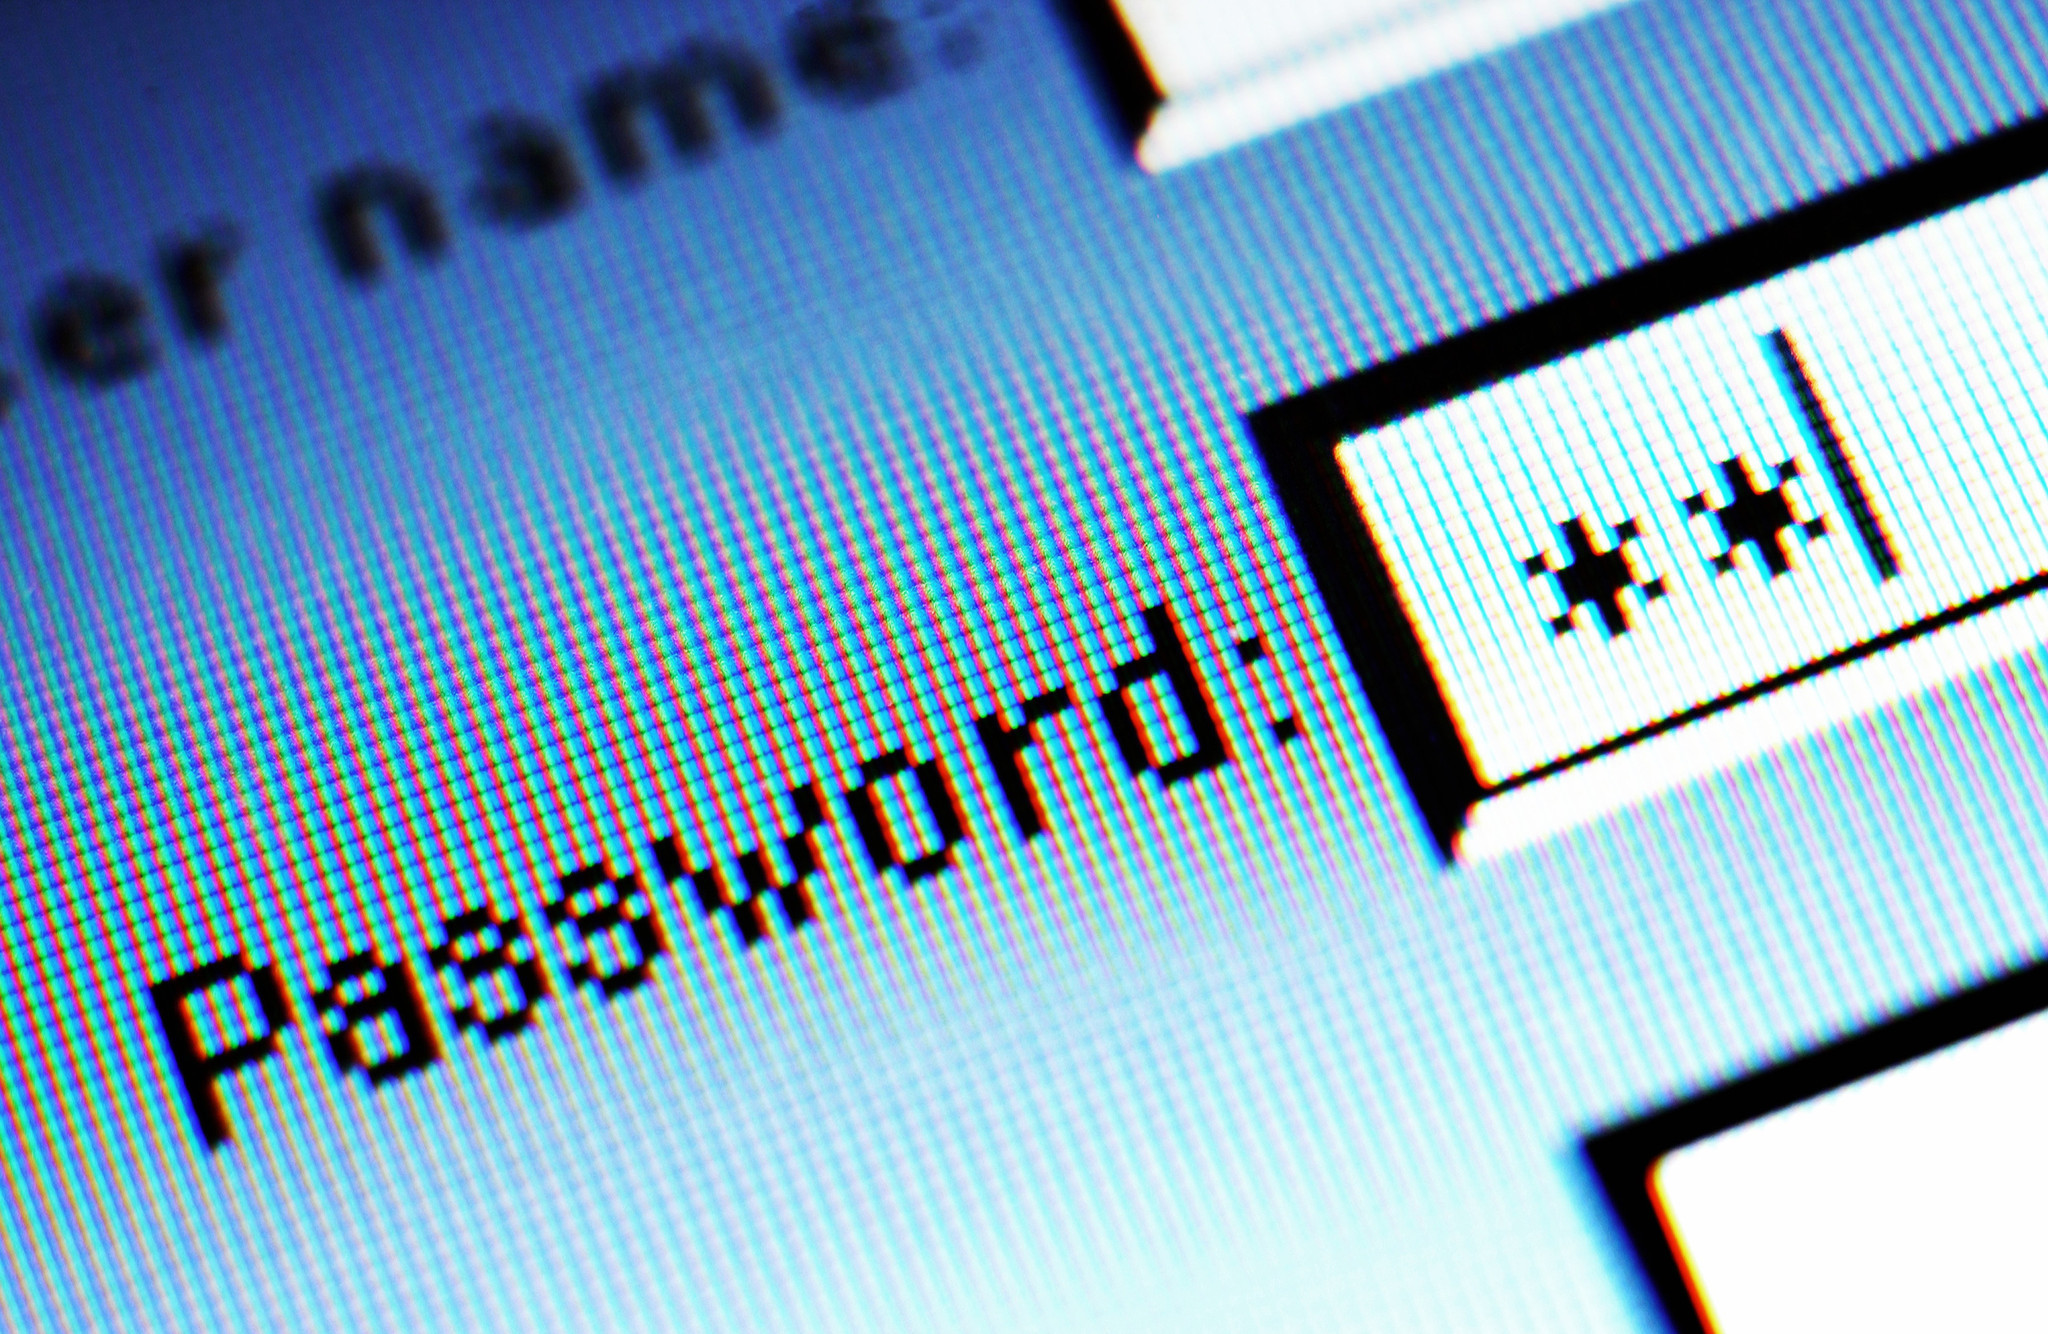 The perfect password that's also easy to remember